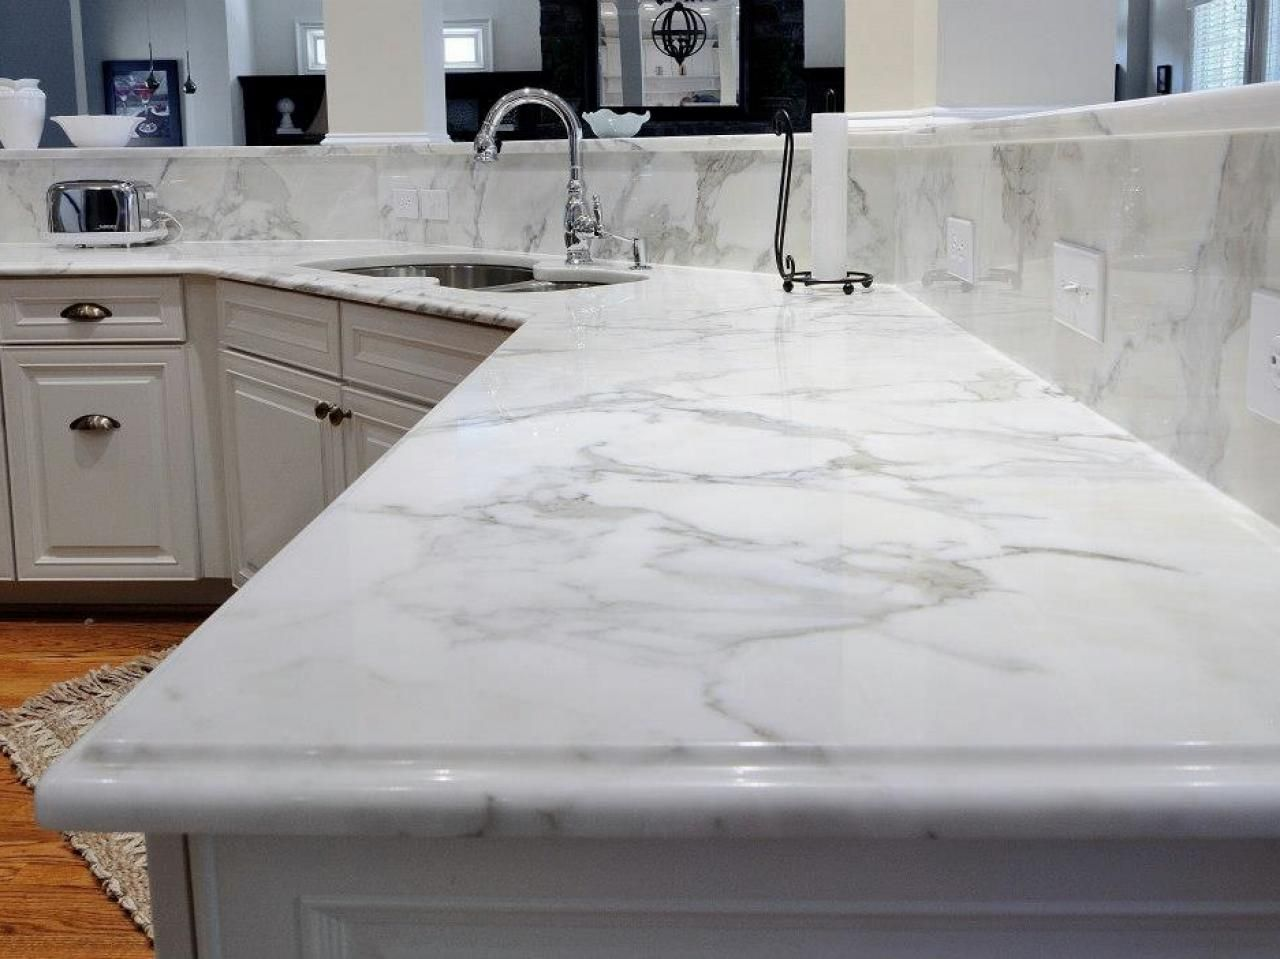 Laminate Kitchen Countertops: Pictures & Ideas From | Hgtv ...